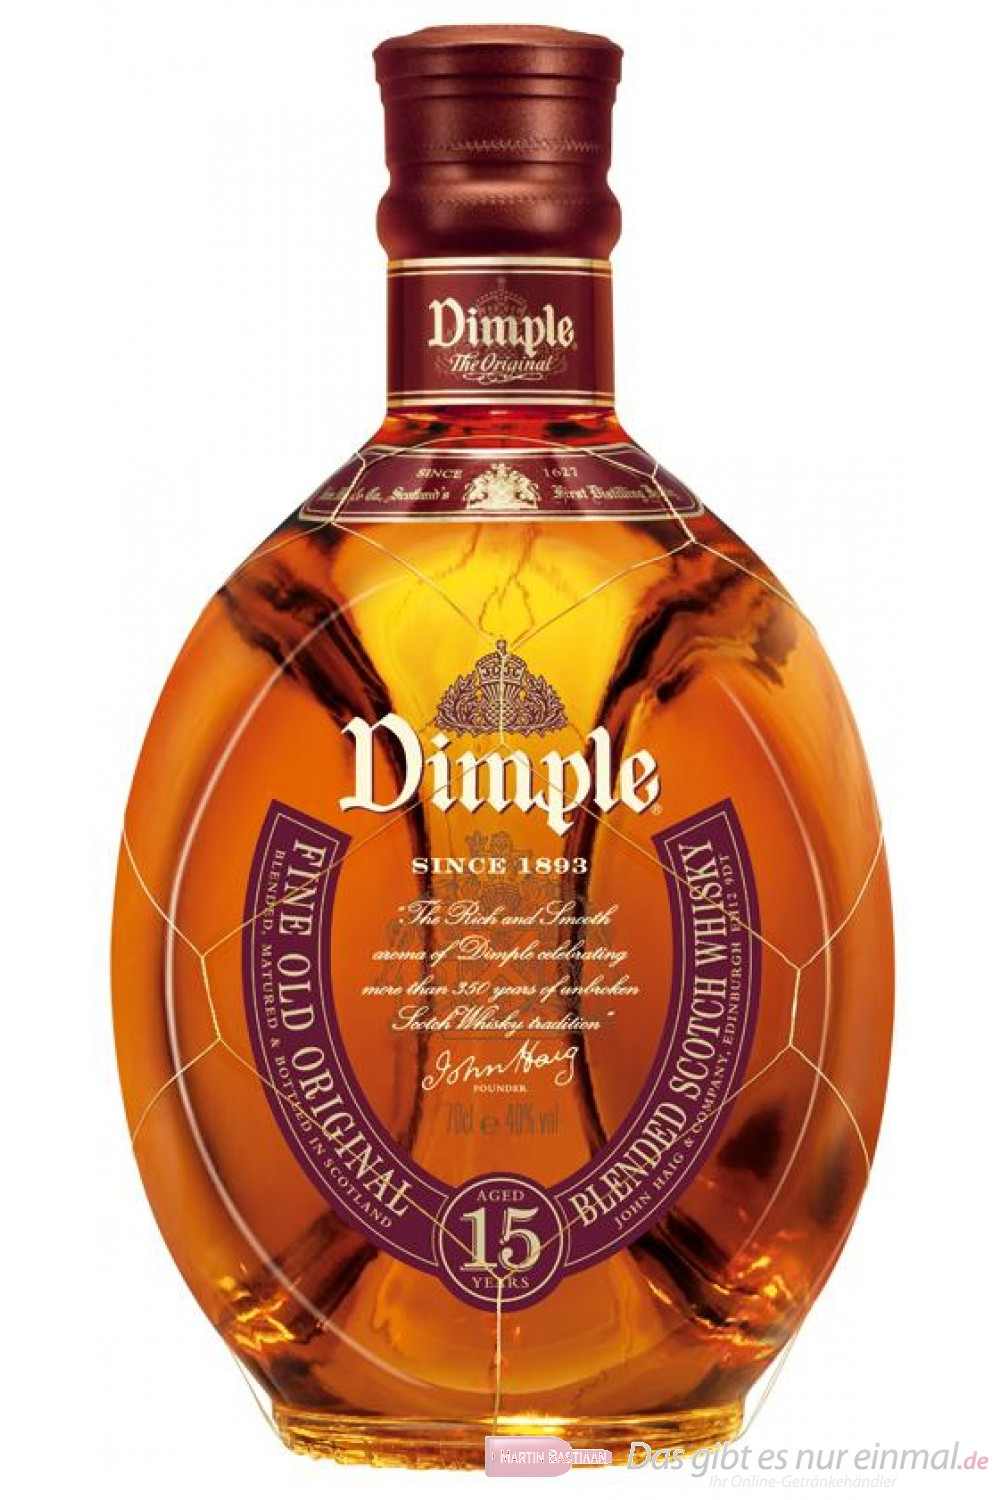 Dimple Scotch 15 Jahre Blended Scotch Whisky 40% 0,7l Flasche